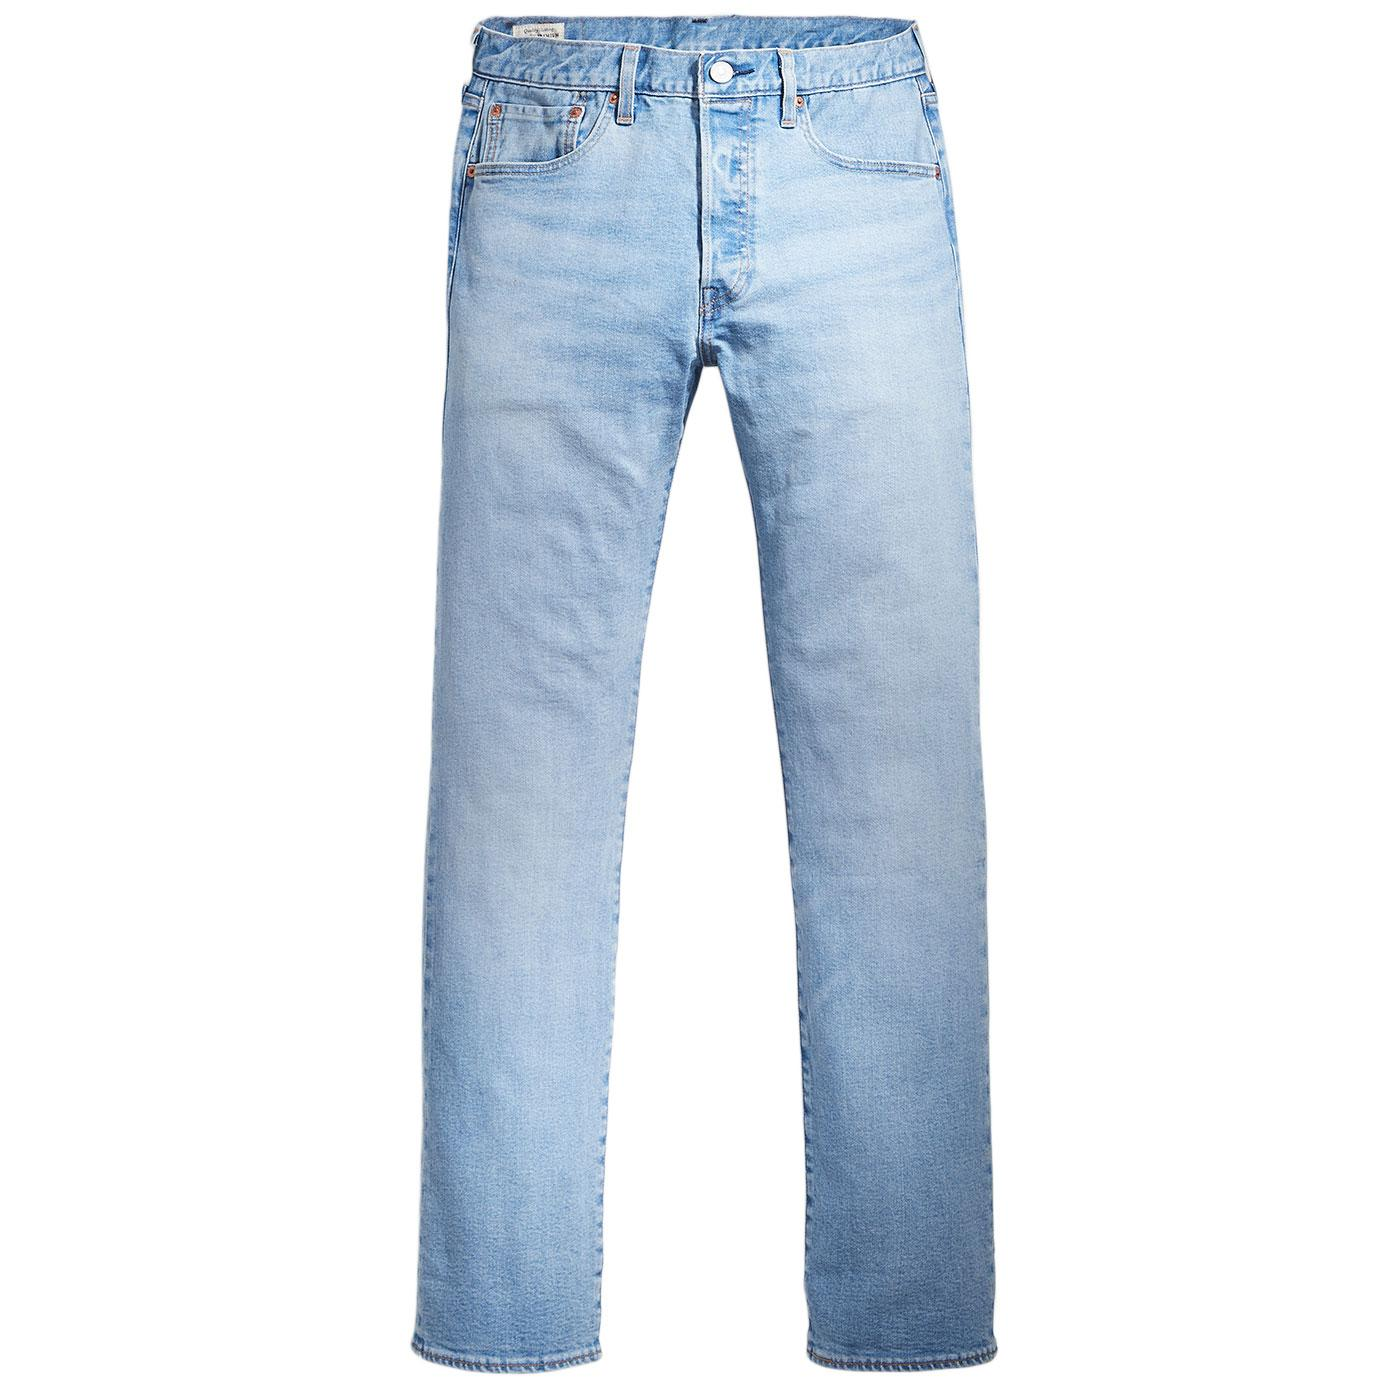 LEVI'S 501 Original Straight Jeans CONEFLOWER BARN